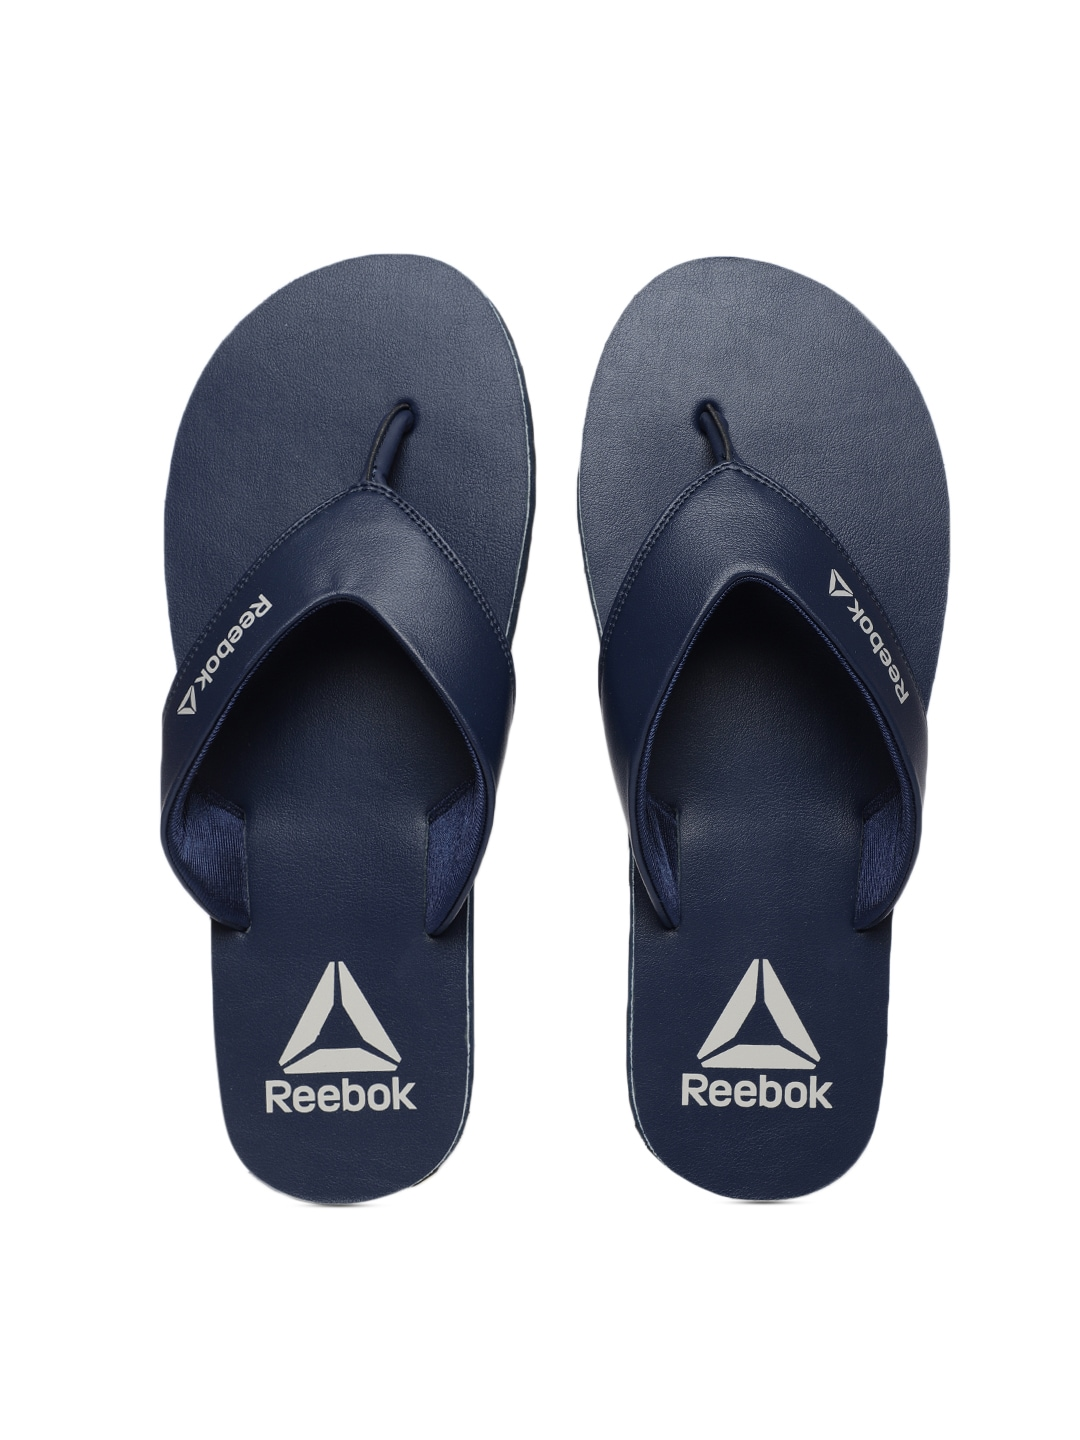 a04eebd06474ae Men s Reebok Flip Flops - Buy Reebok Flip Flops for Men Online in India